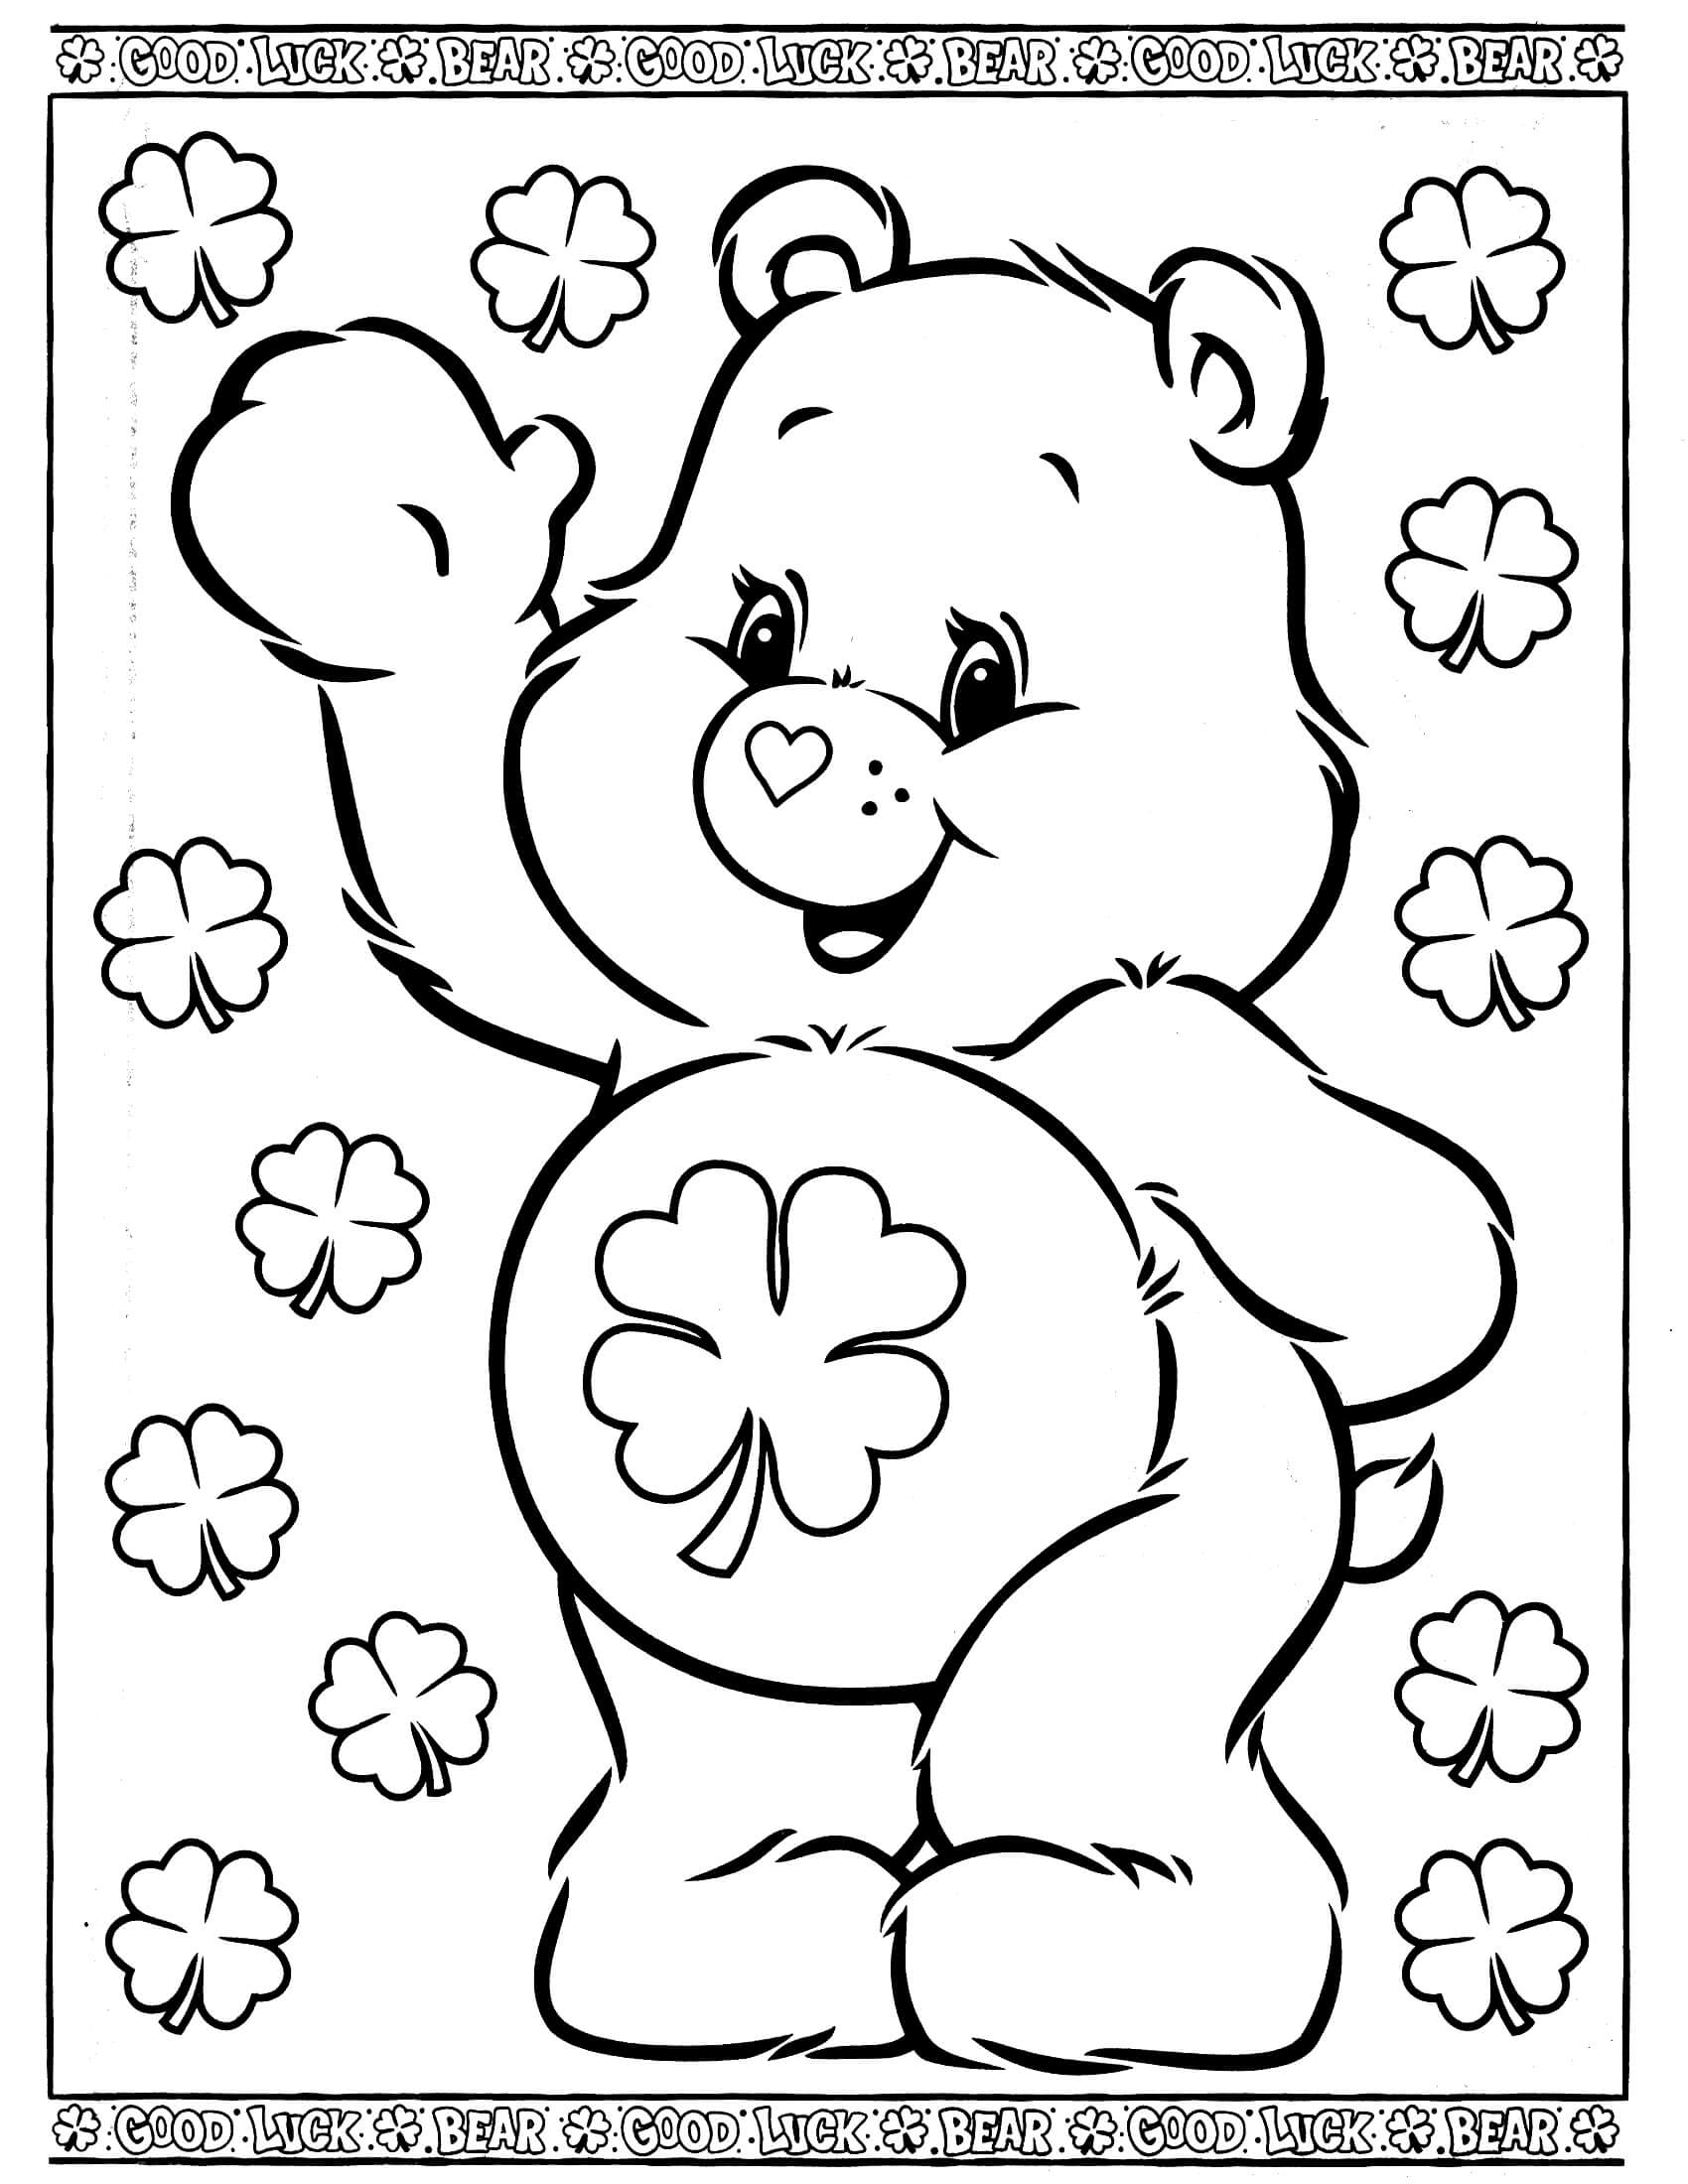 dora coloring pages - care bears coloring page 29